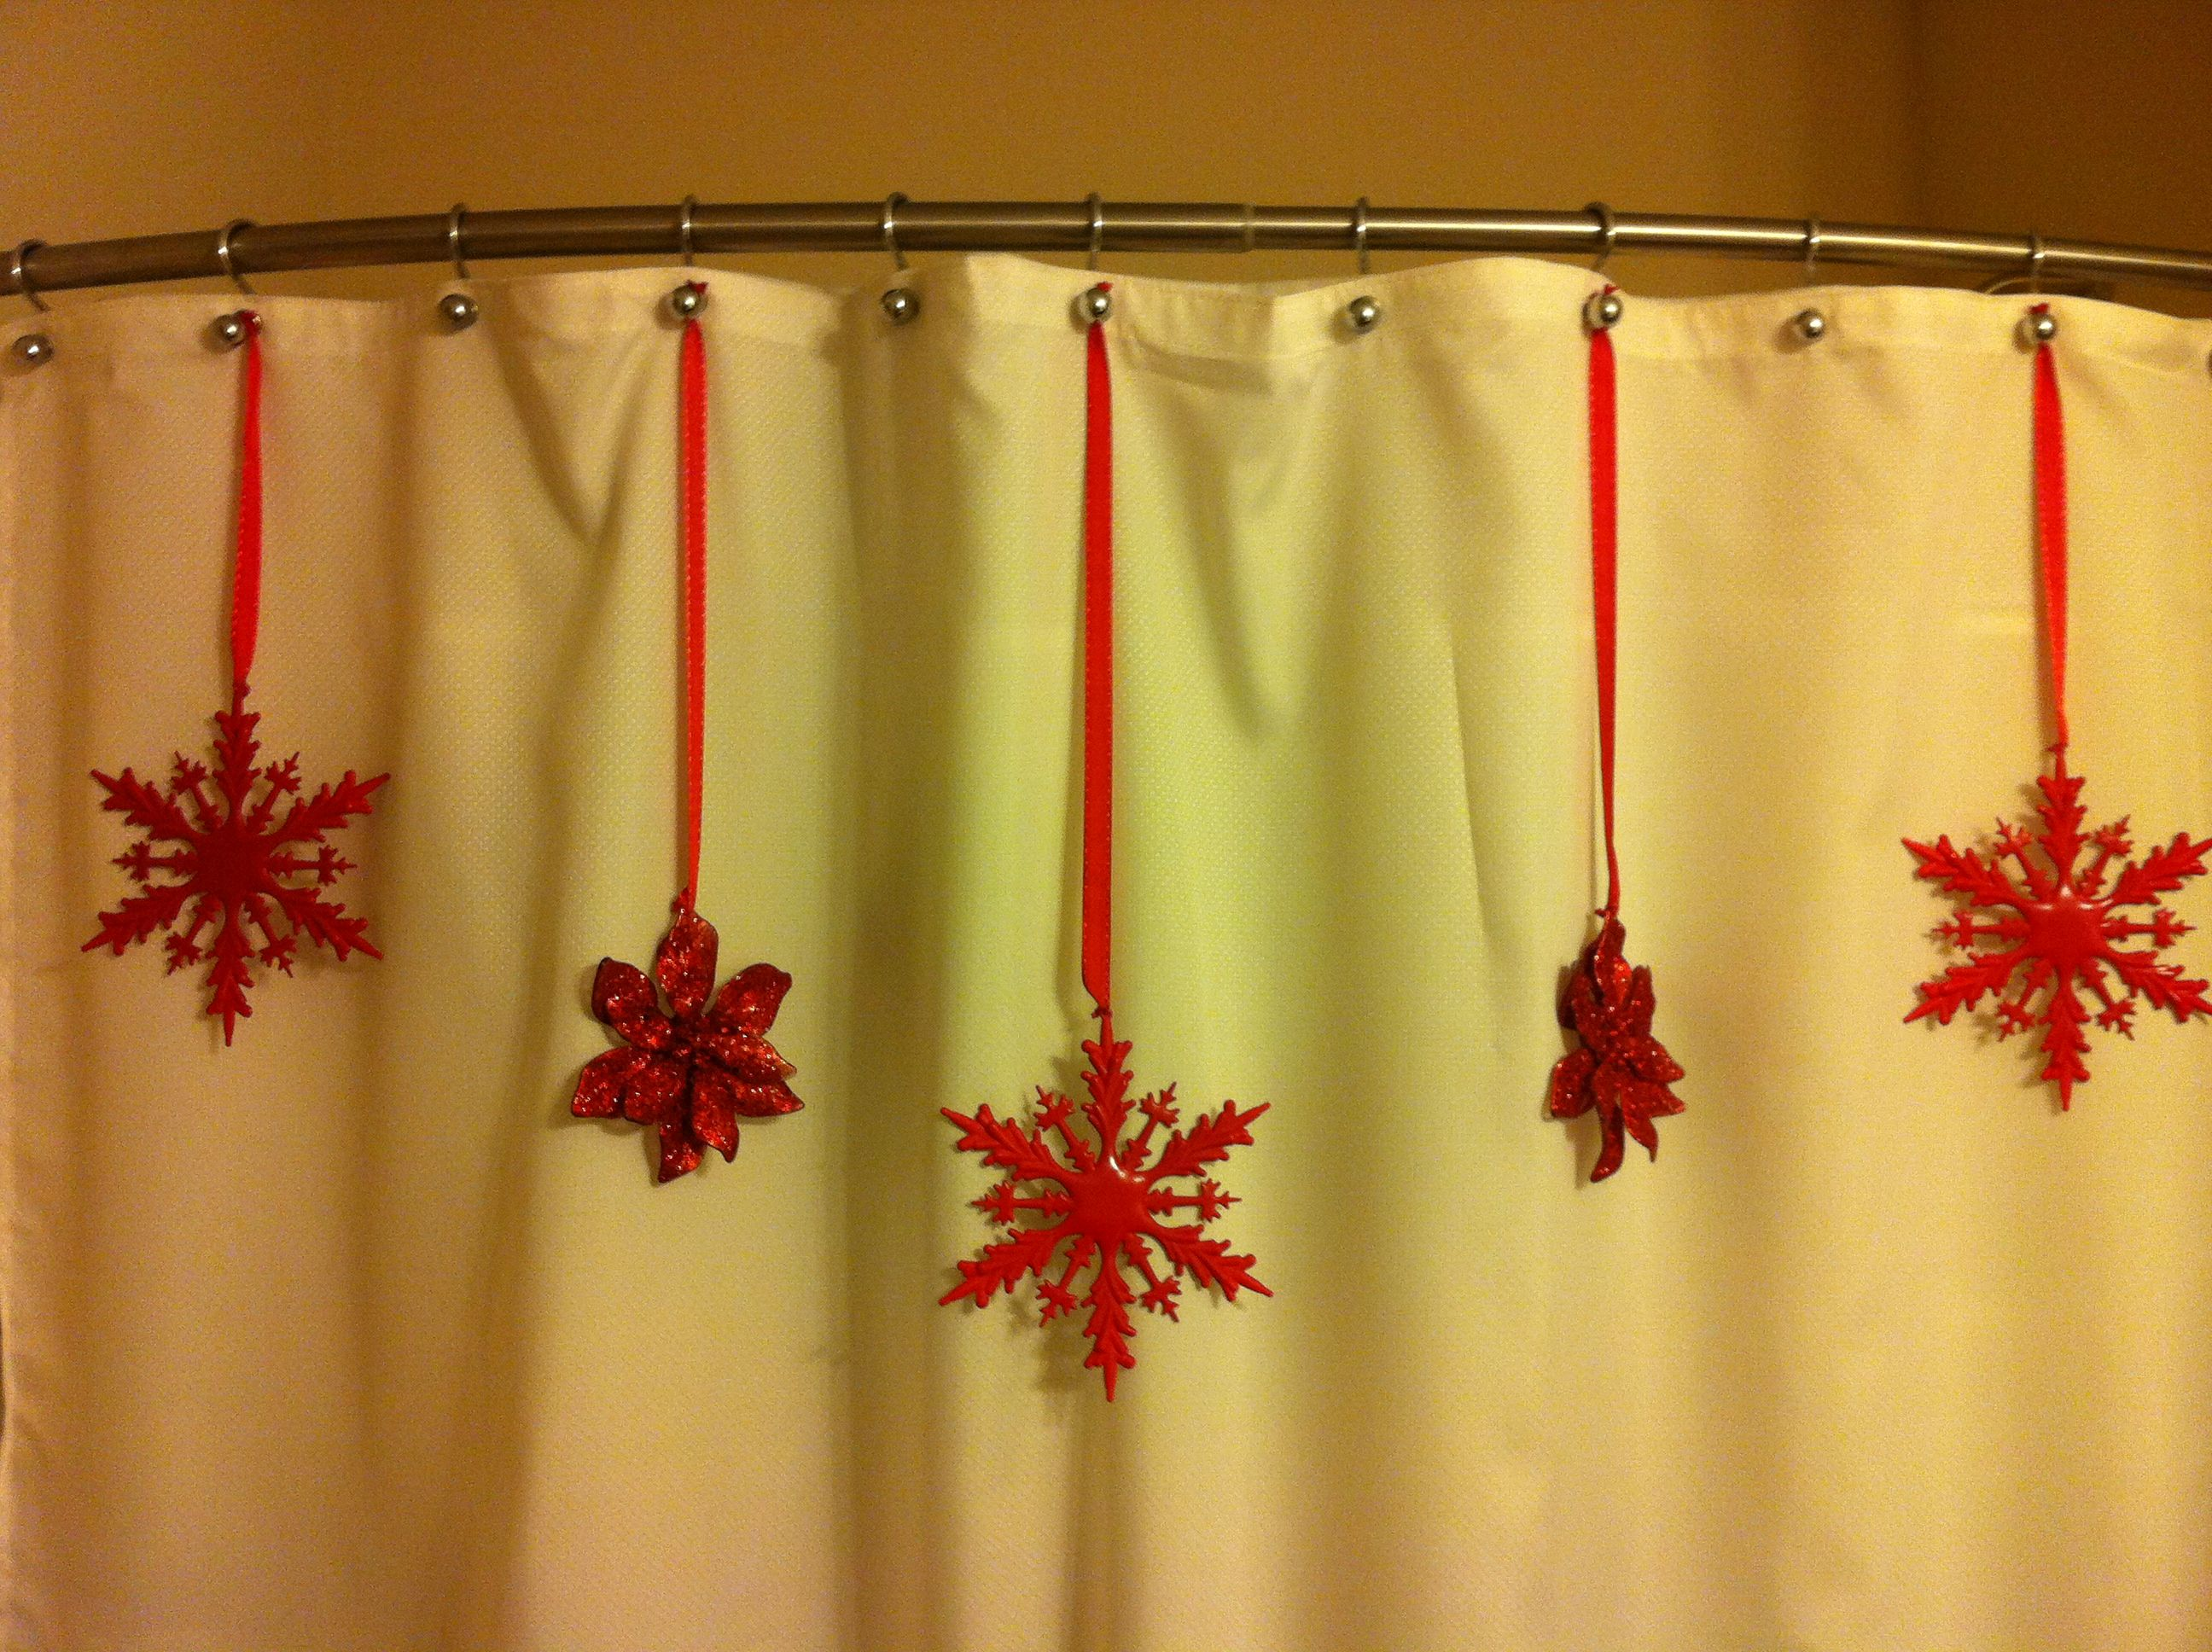 Dollar Store Ornaments On A Shower Curtain Great Way To Decorate